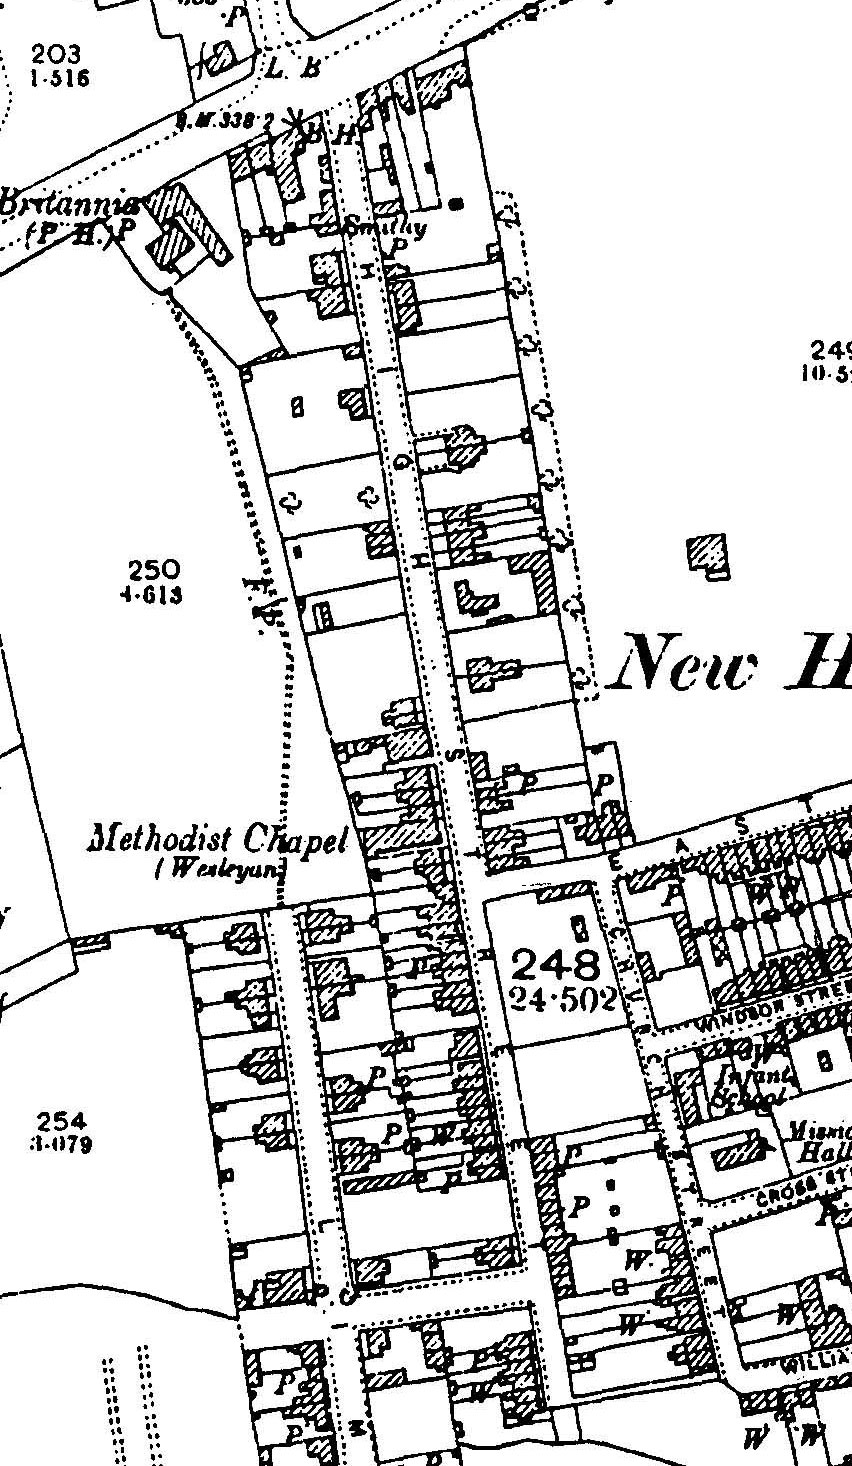 New High Street in 1898